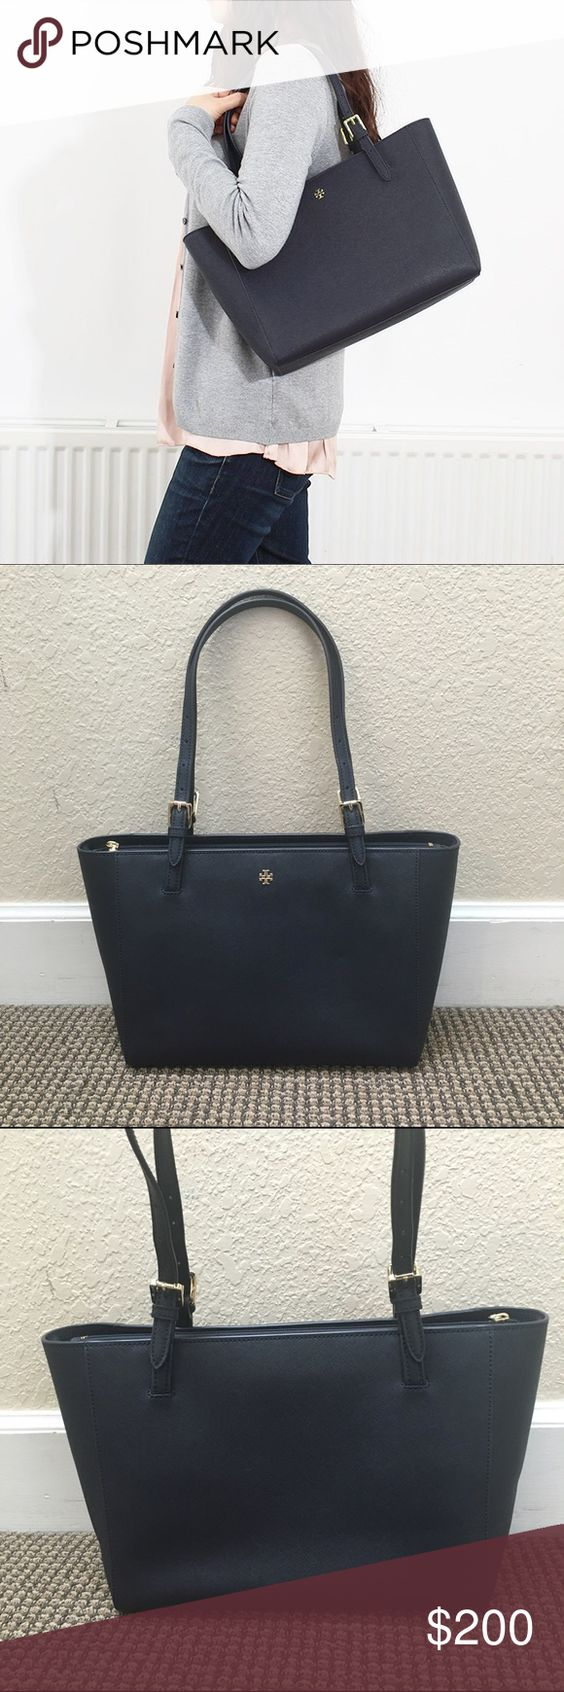 Tory burch York navy saffiano leather tote bag Tory burch shoulder tote. Style is called York and this is the small size. Navy saffiano leather, multiple interior pockets with key clasp, and gold hardware. Holds a 13 inch laptop! Excellent condition Tory Burch Bags Totes